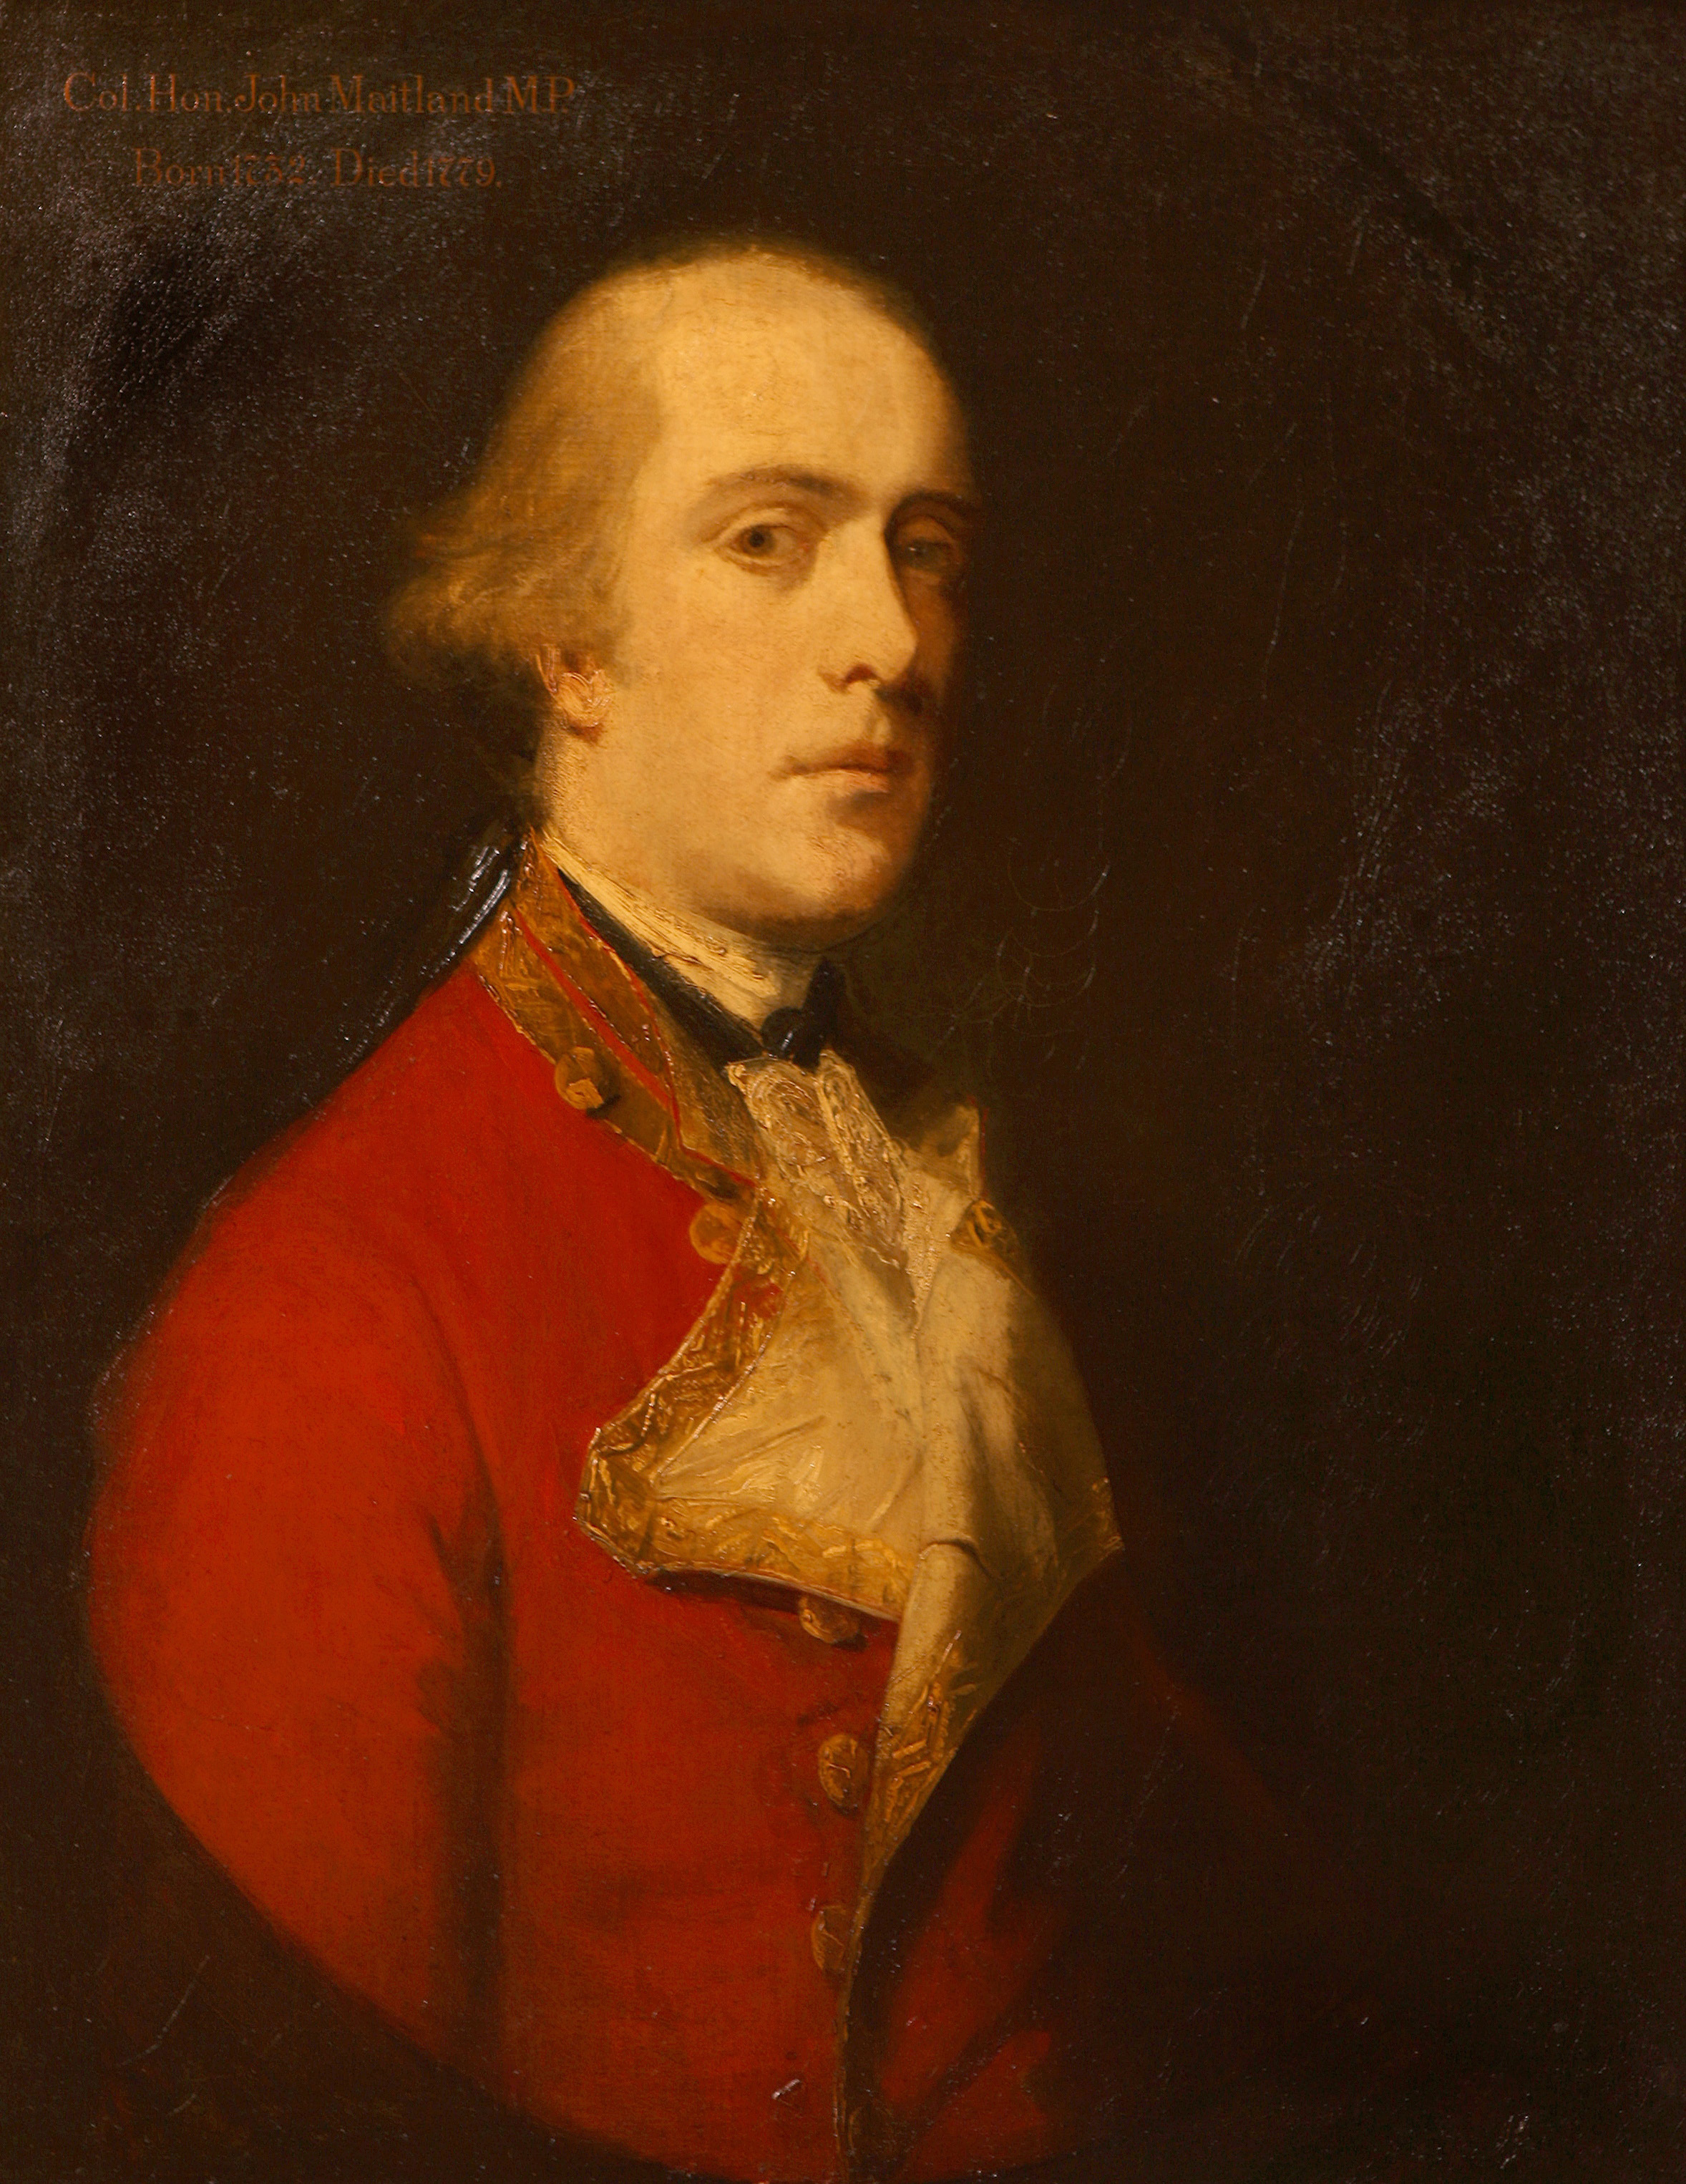 Colonel The Honourable John Maitland